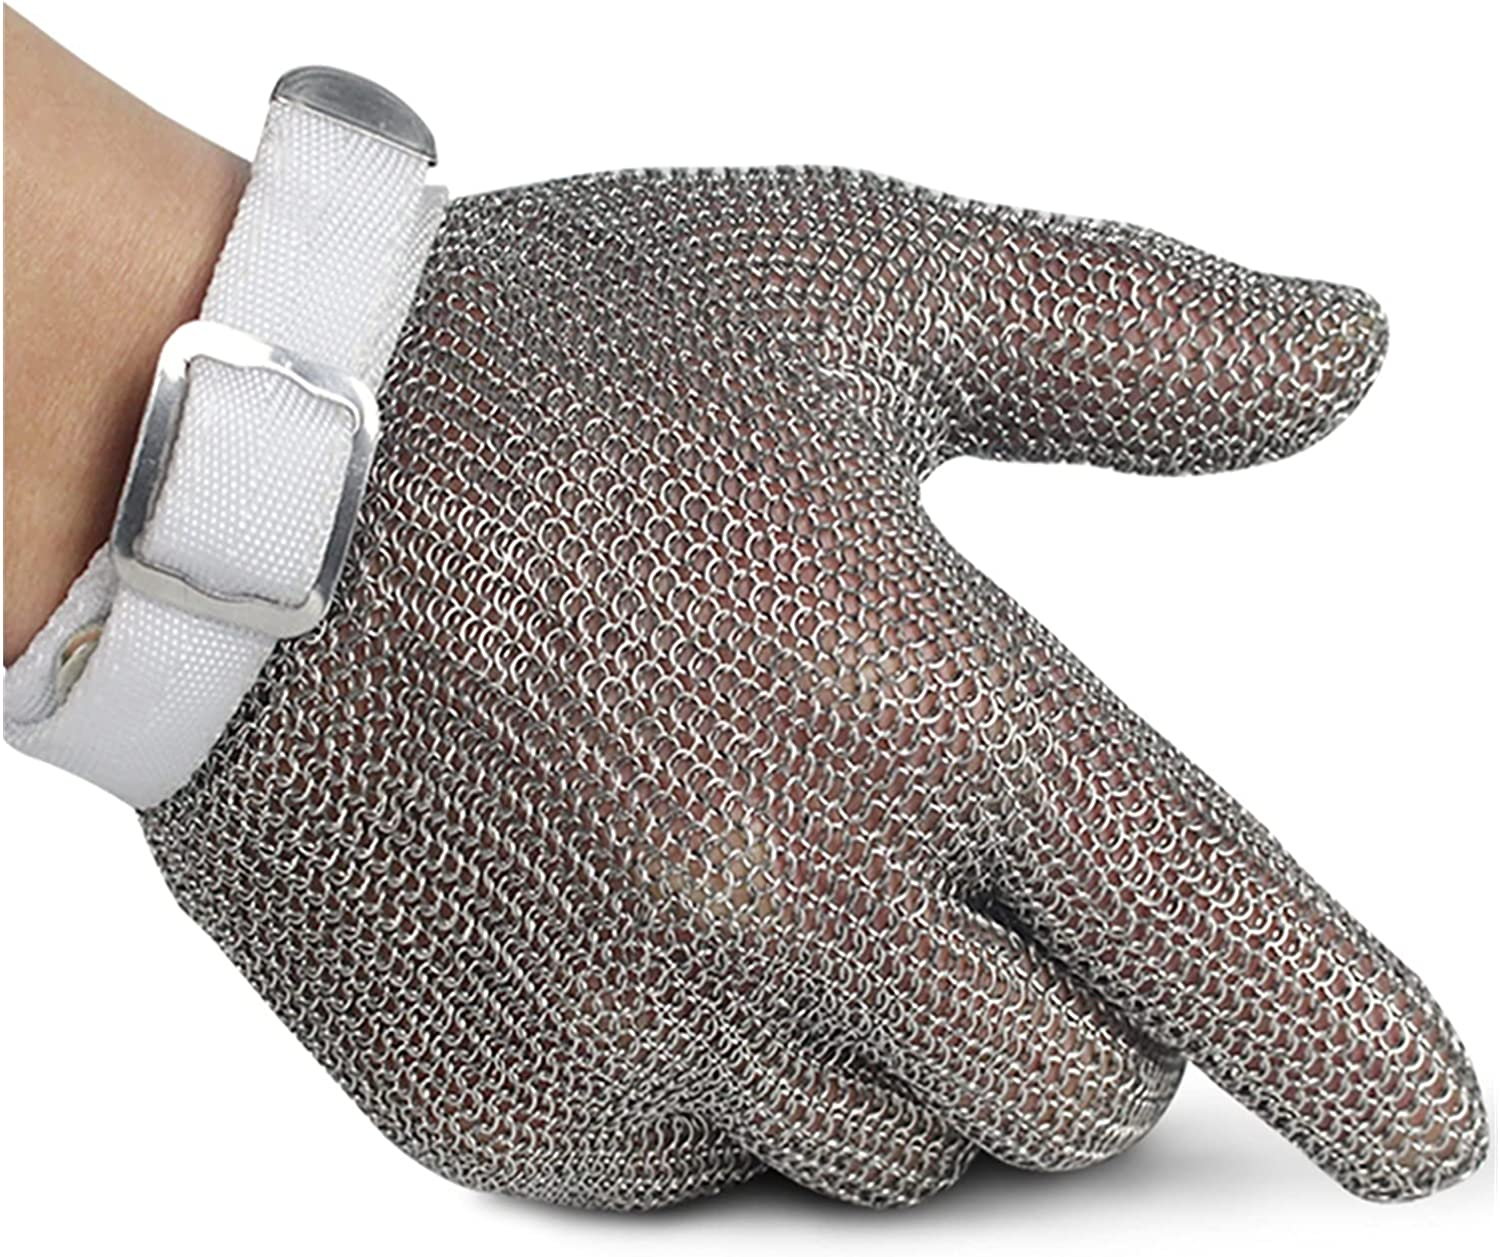 Los Angeles Mall Anti Cut Cheap SALE Start Glove Cut-Resistant Gloves Safety Work Sta with